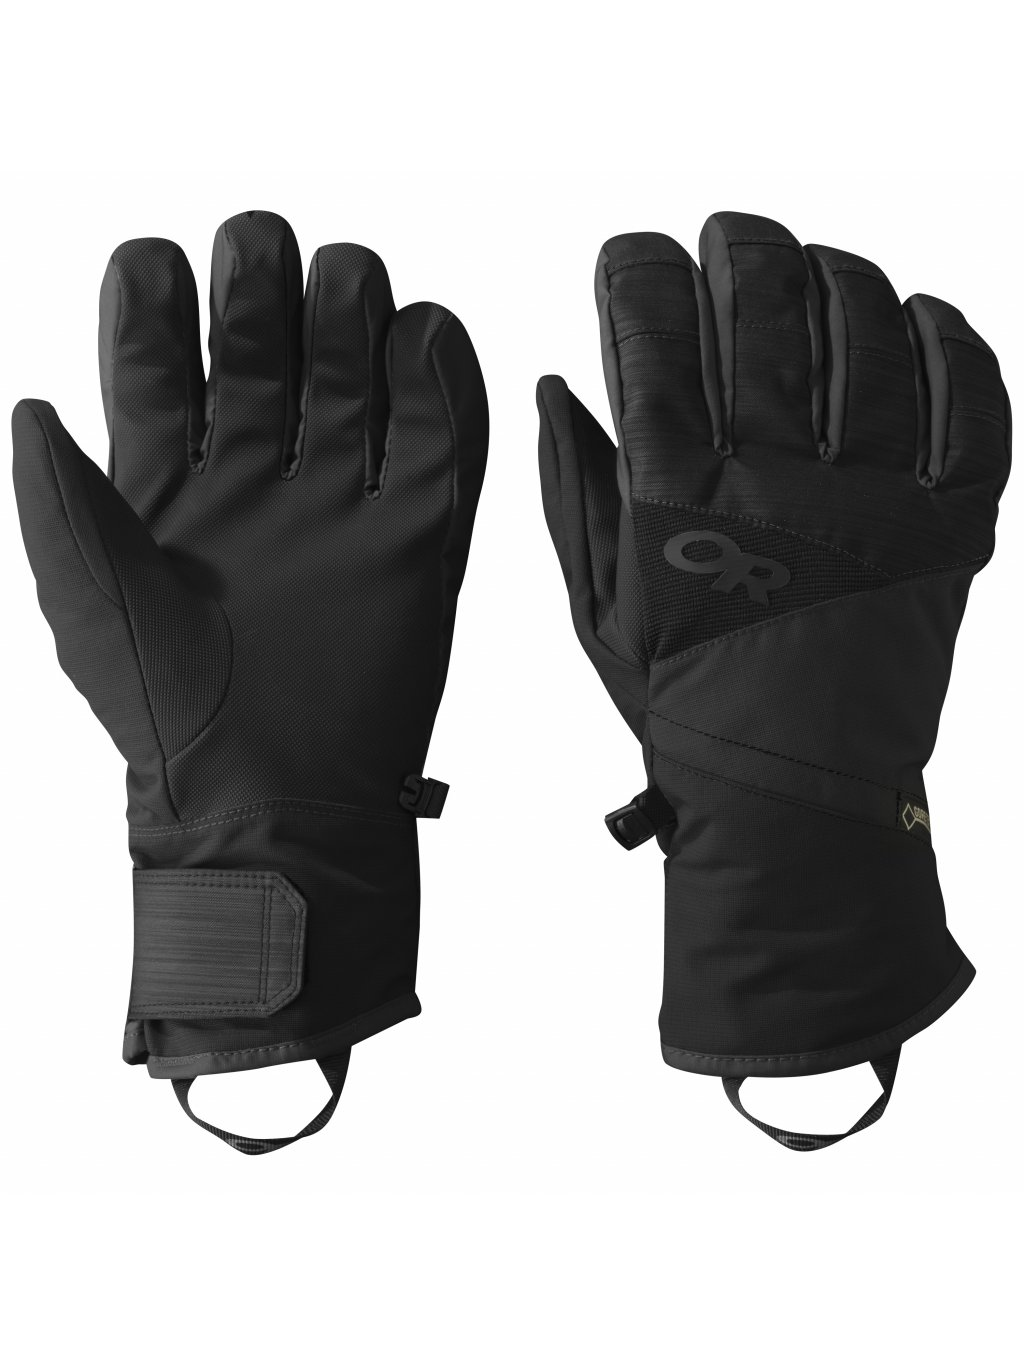 OUTDOOR RESEARCH Men's Centurion Gloves, black